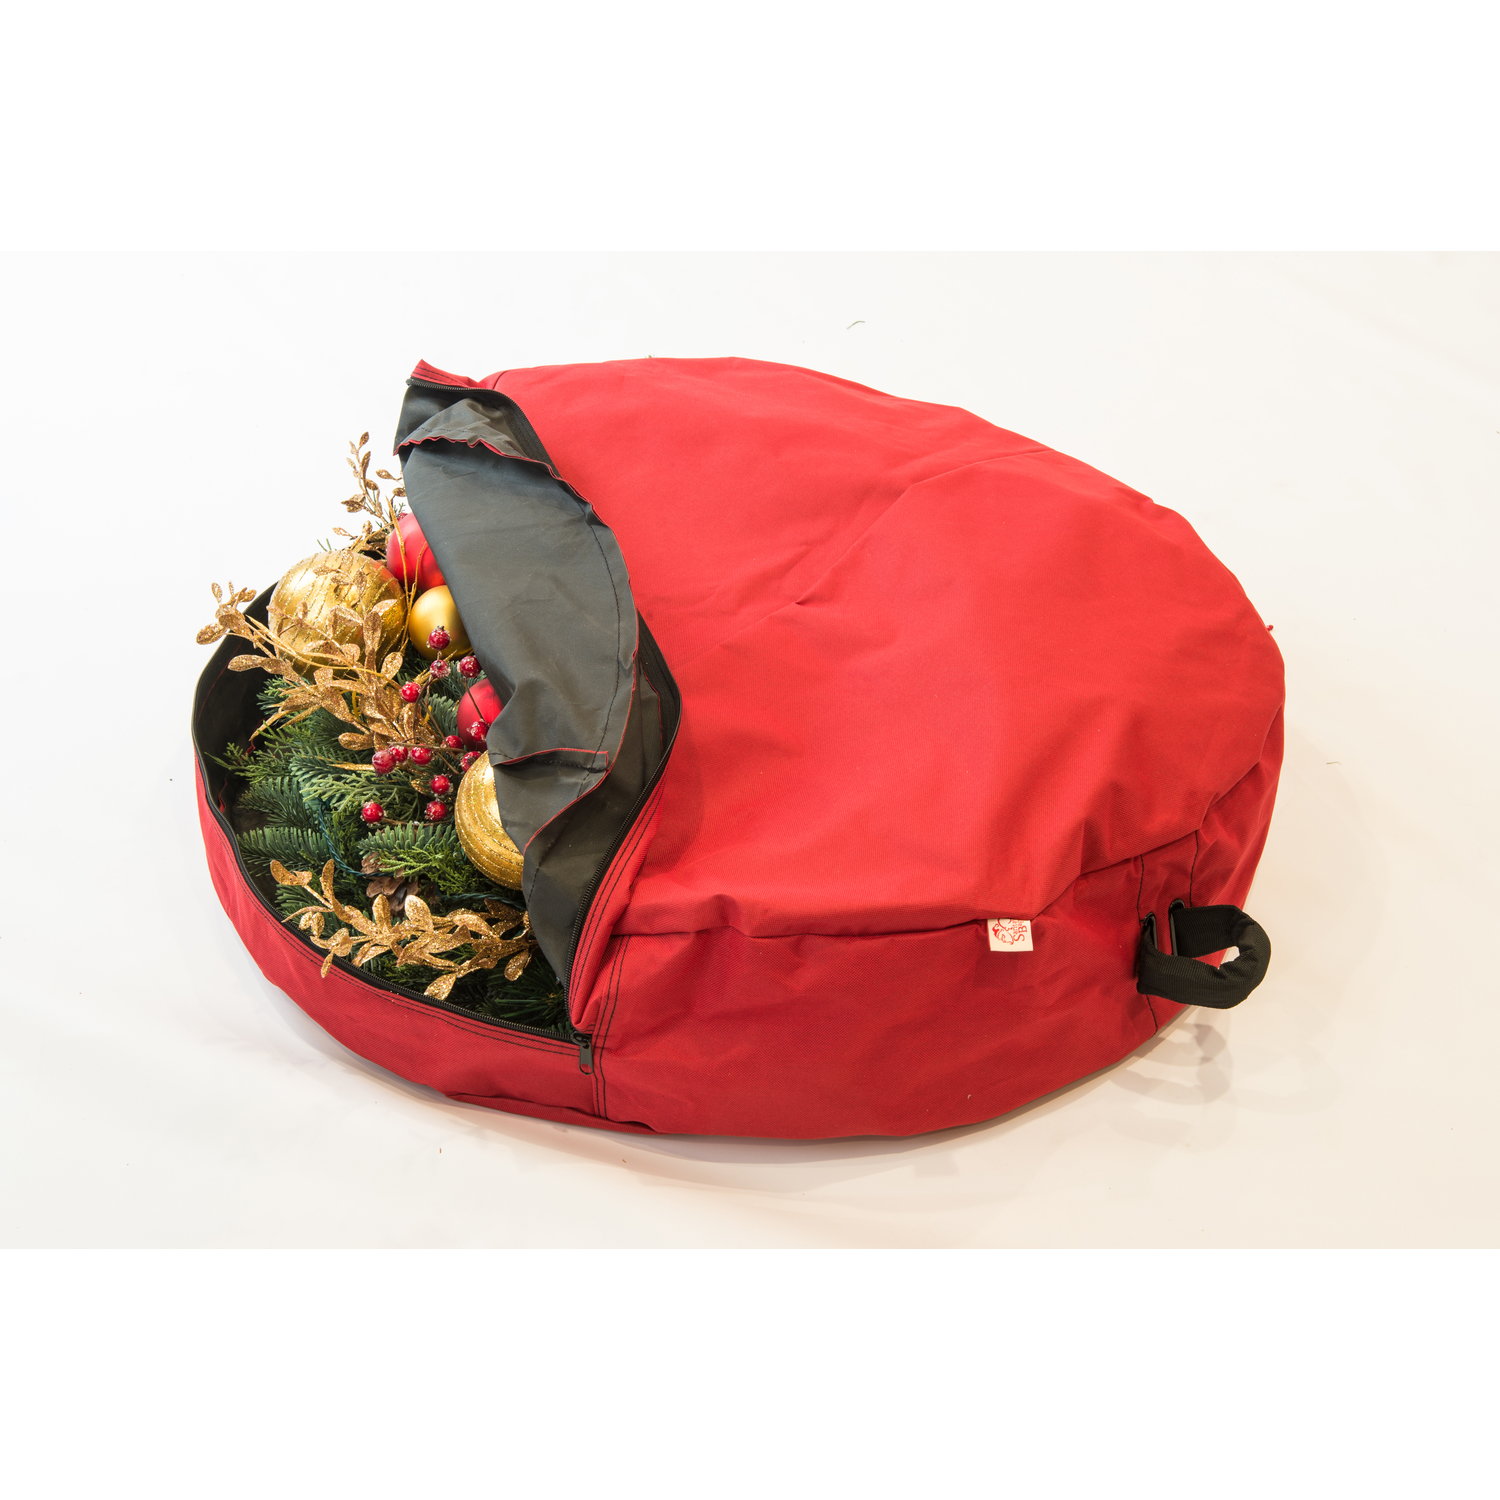 The 36 Basic Wreath Storage Bag w/Direct Suspend is a great way to hang your Christmas Wreath using hooks. The Direct Suspend handle connects to a hook inside the wreath bag which is then connected to the wire frame of your wreath.